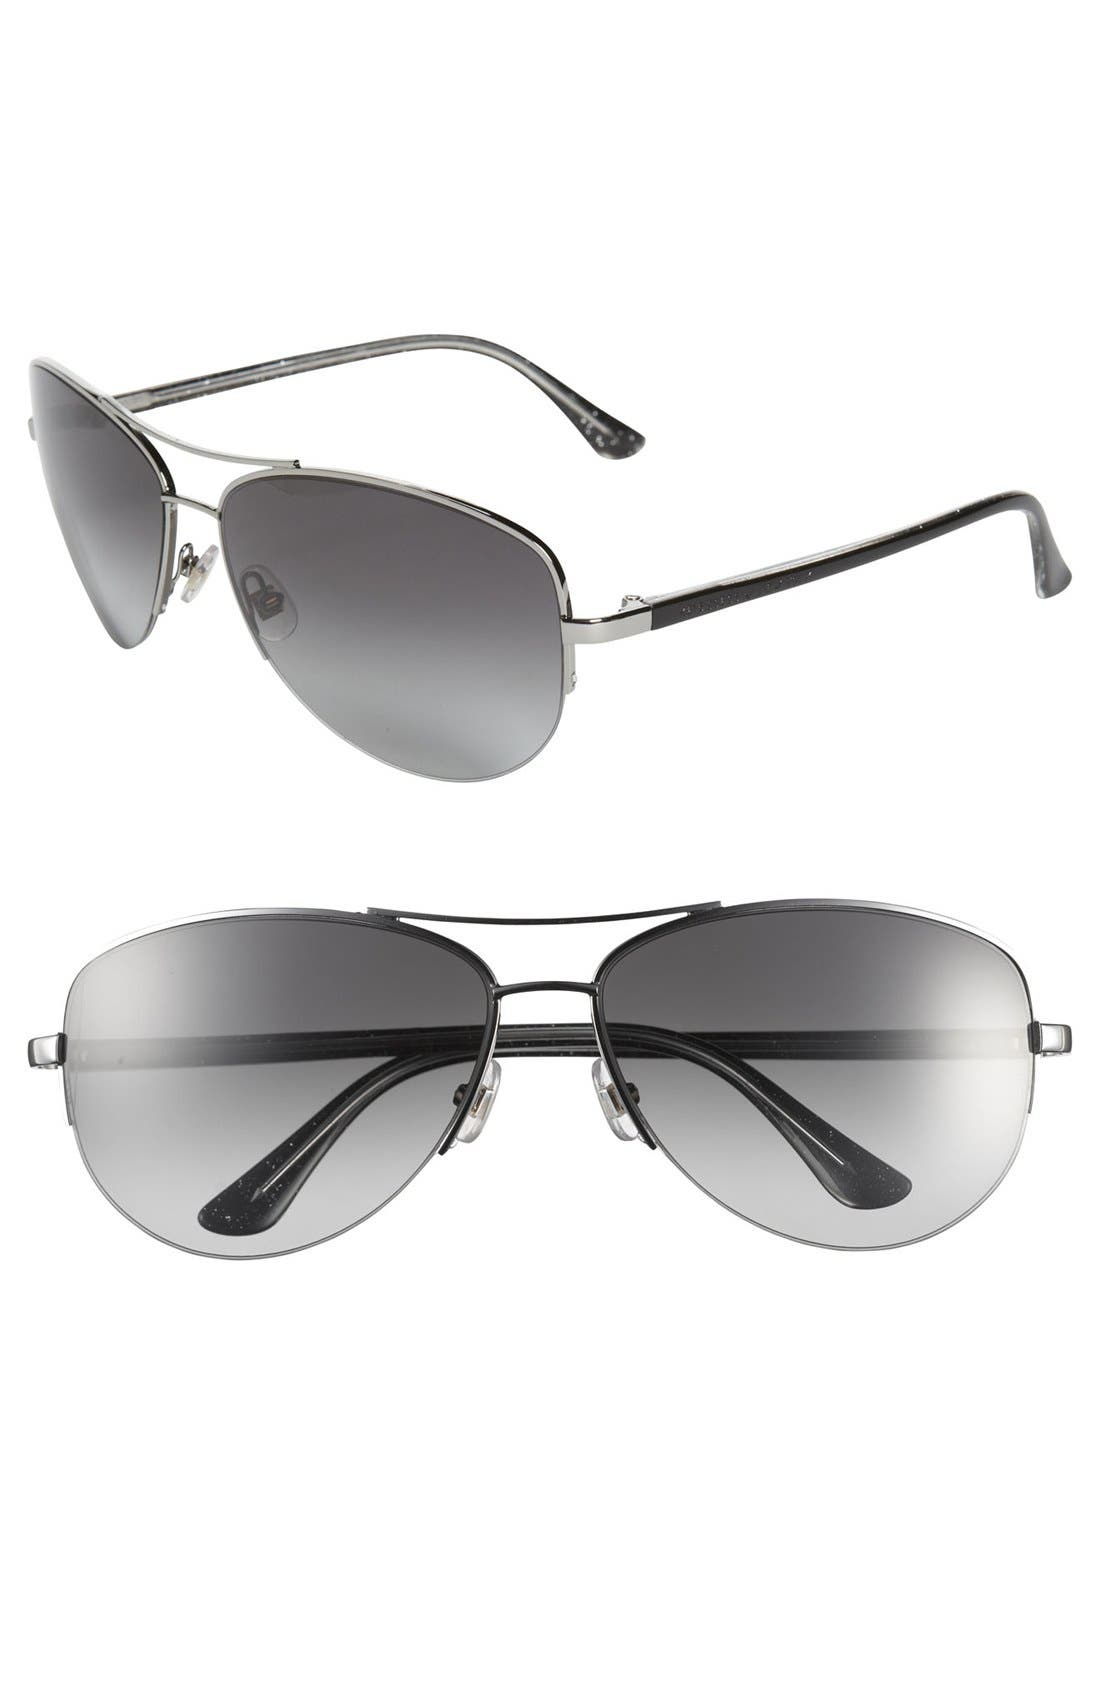 Alternate Image 1 Selected - kate spade new york 'elysia' 61mm rimless aviator sunglasses